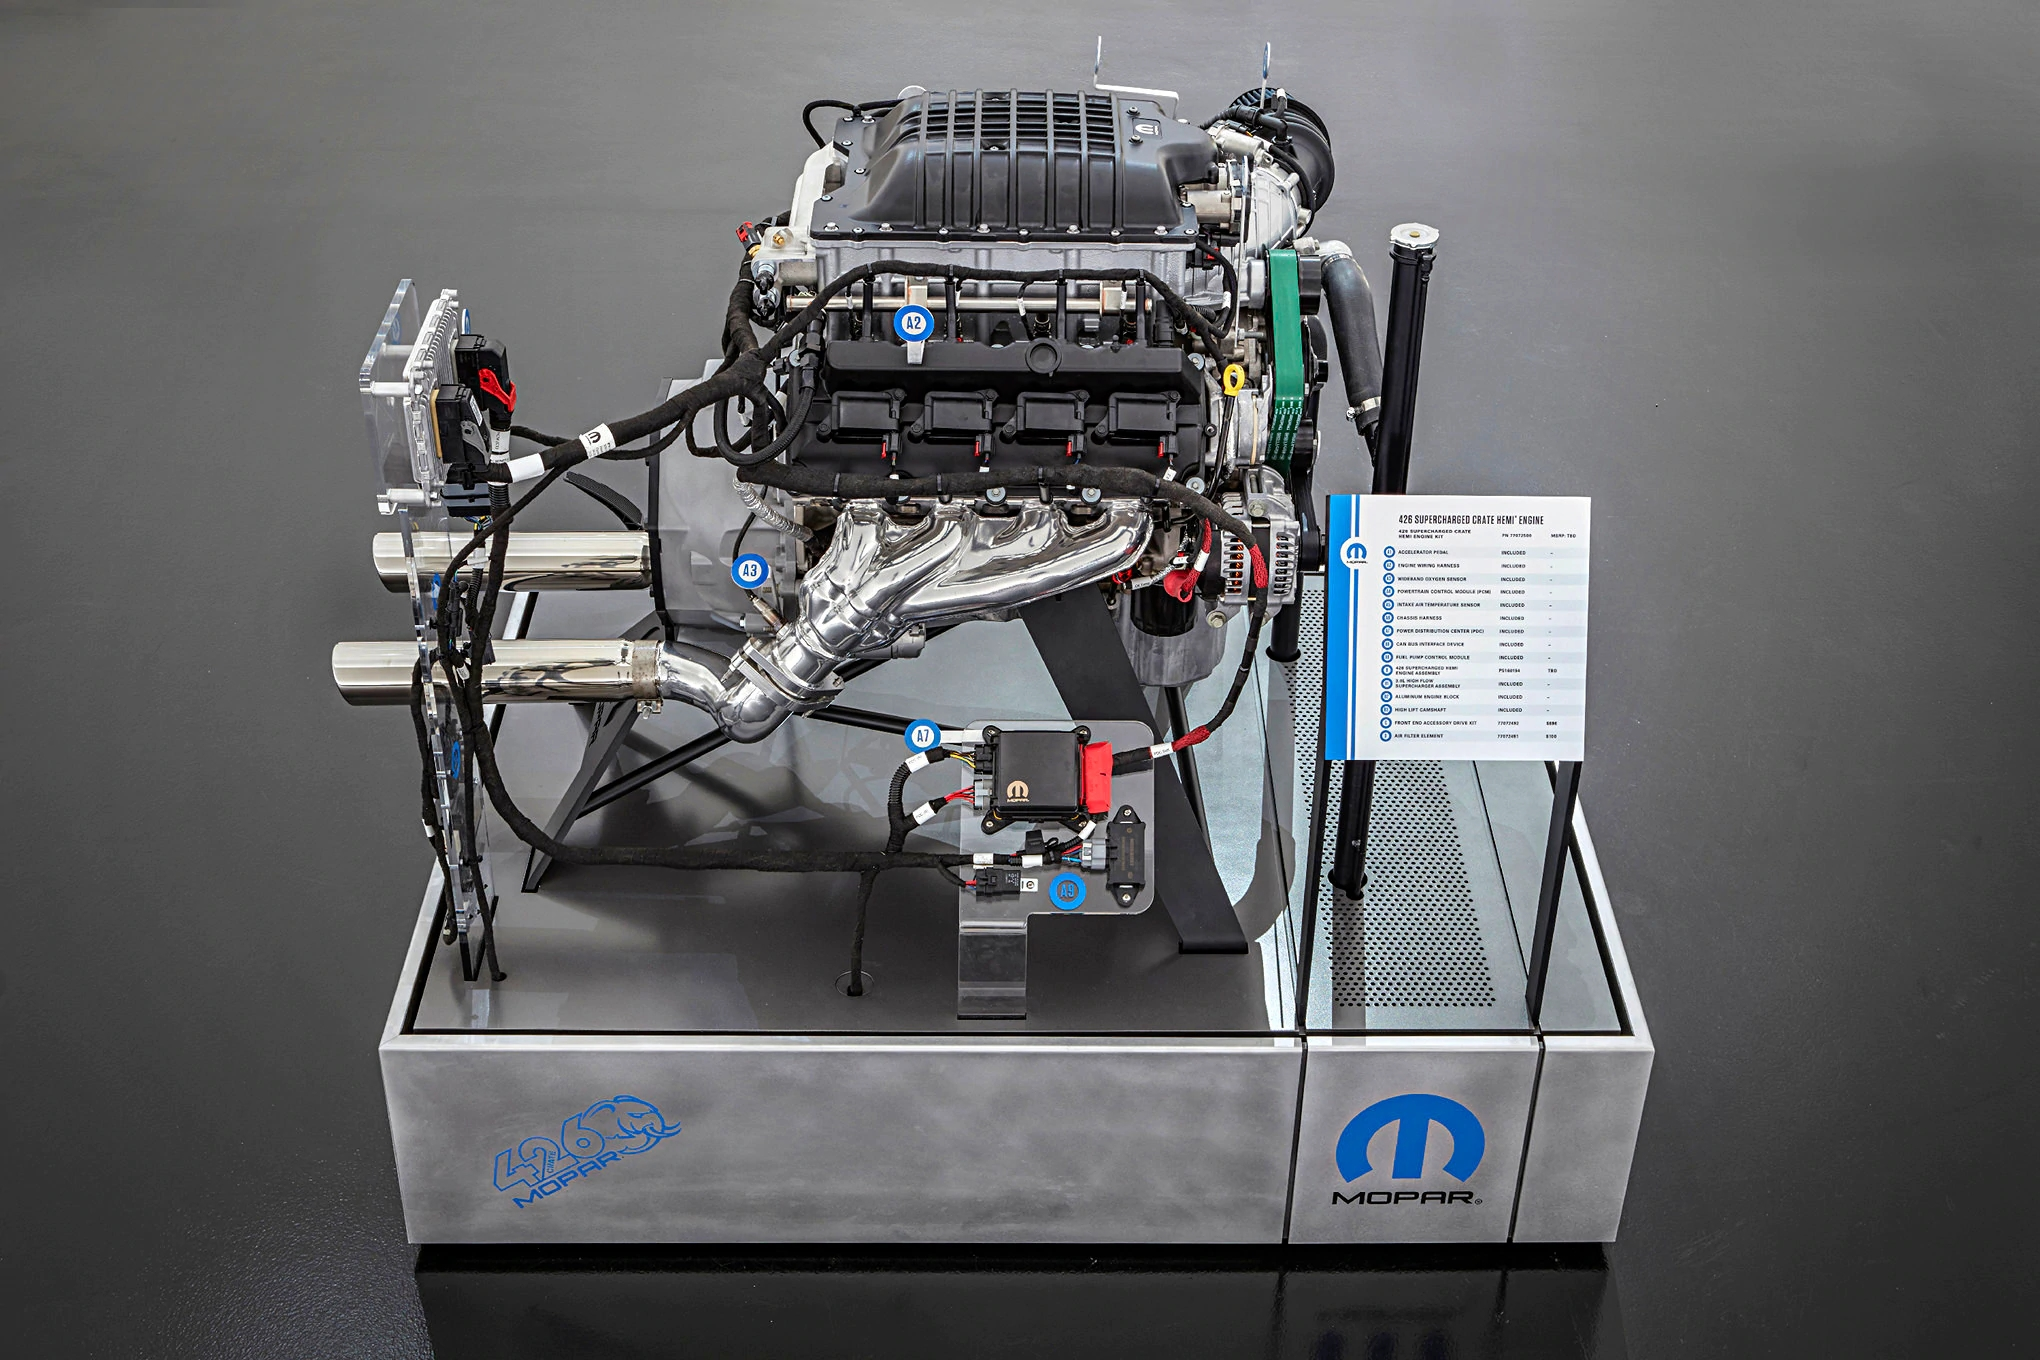 002-mopar-426hemi-crate-engine.jpg